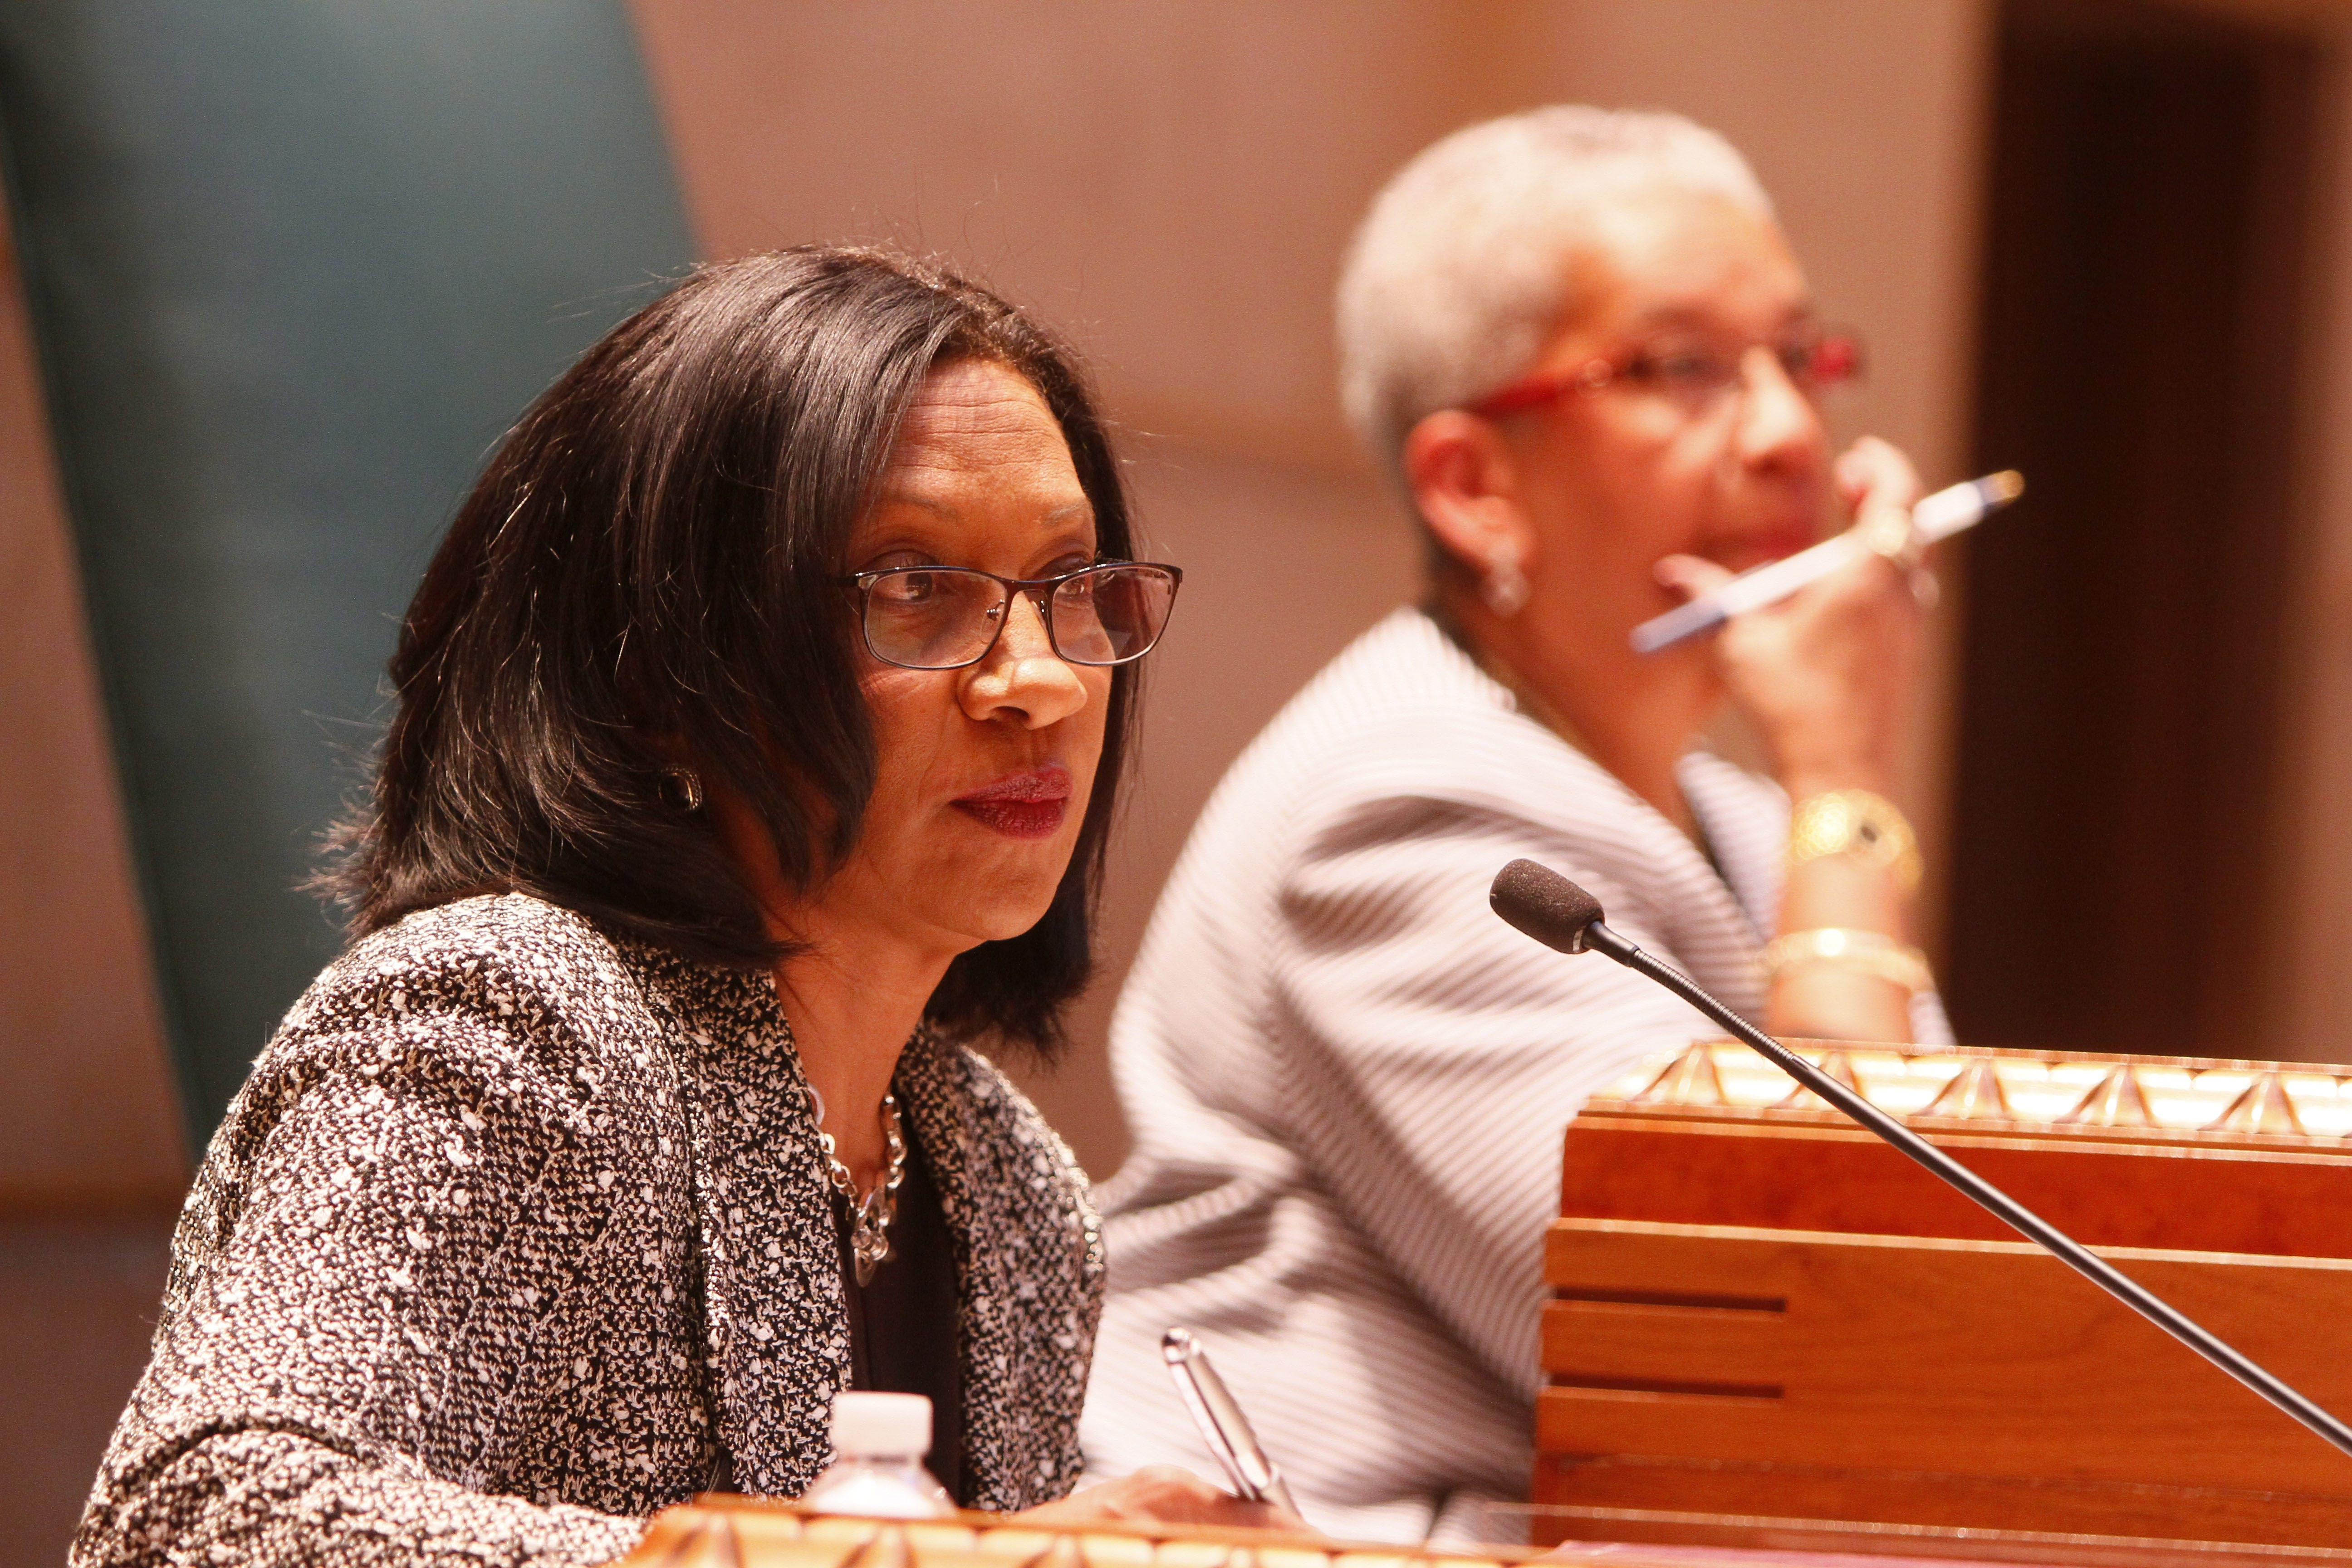 Members of the Buffalo School Board should refrain from taking significant actions until after the May elections for School Board determine the fate of Superintendent Pamela C. Brown.